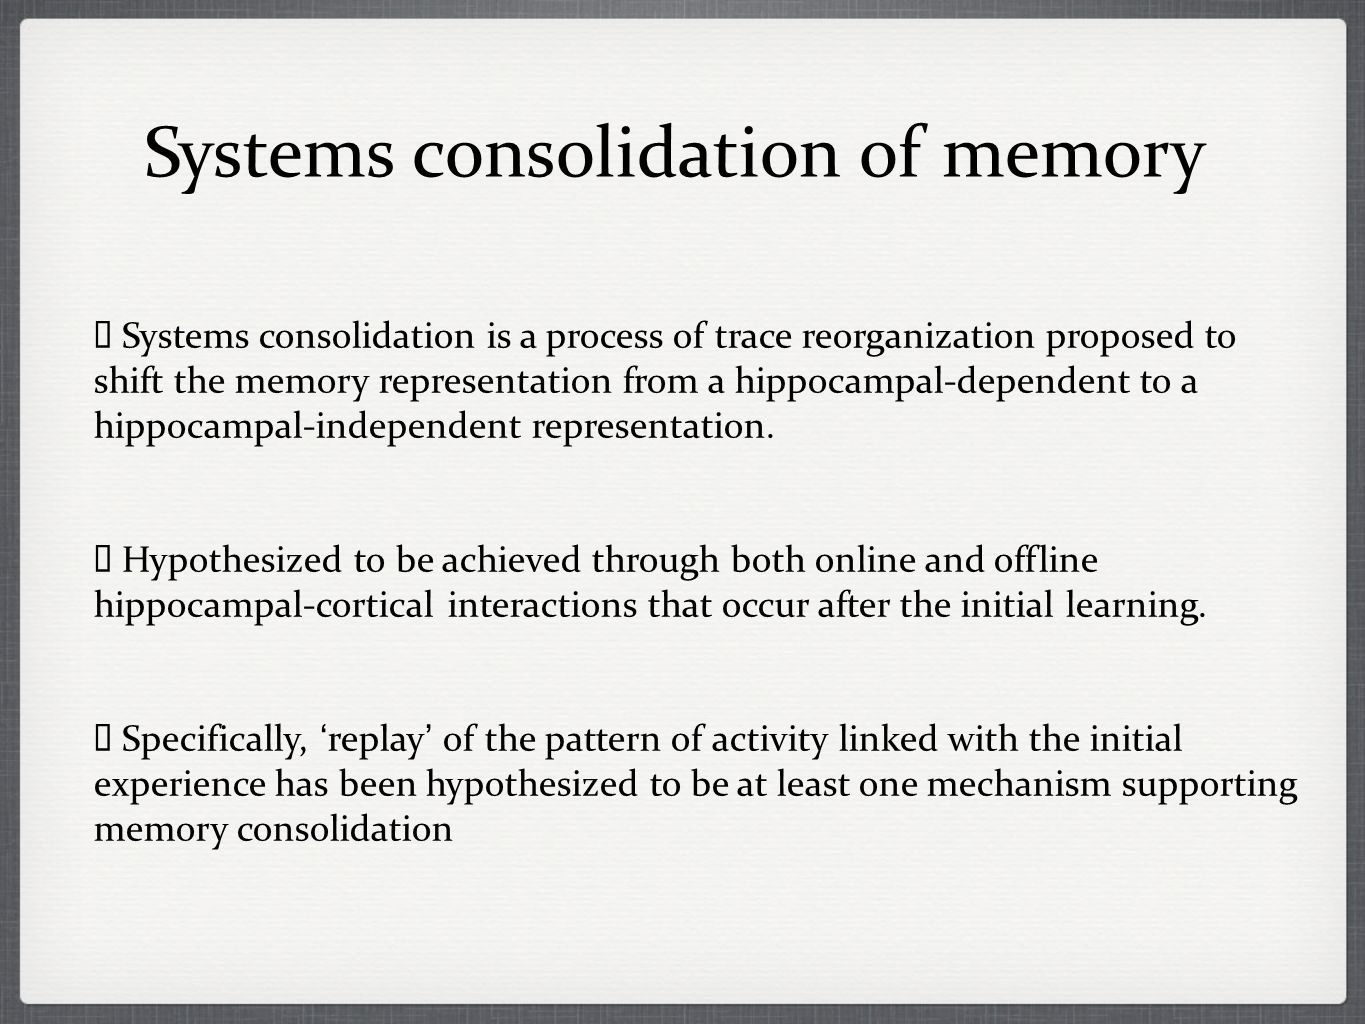 Systems consolidation is a process of trace reorganization proposed to shift the memory representation from a hippocampal-dependent to a hippocampal-independent representation.